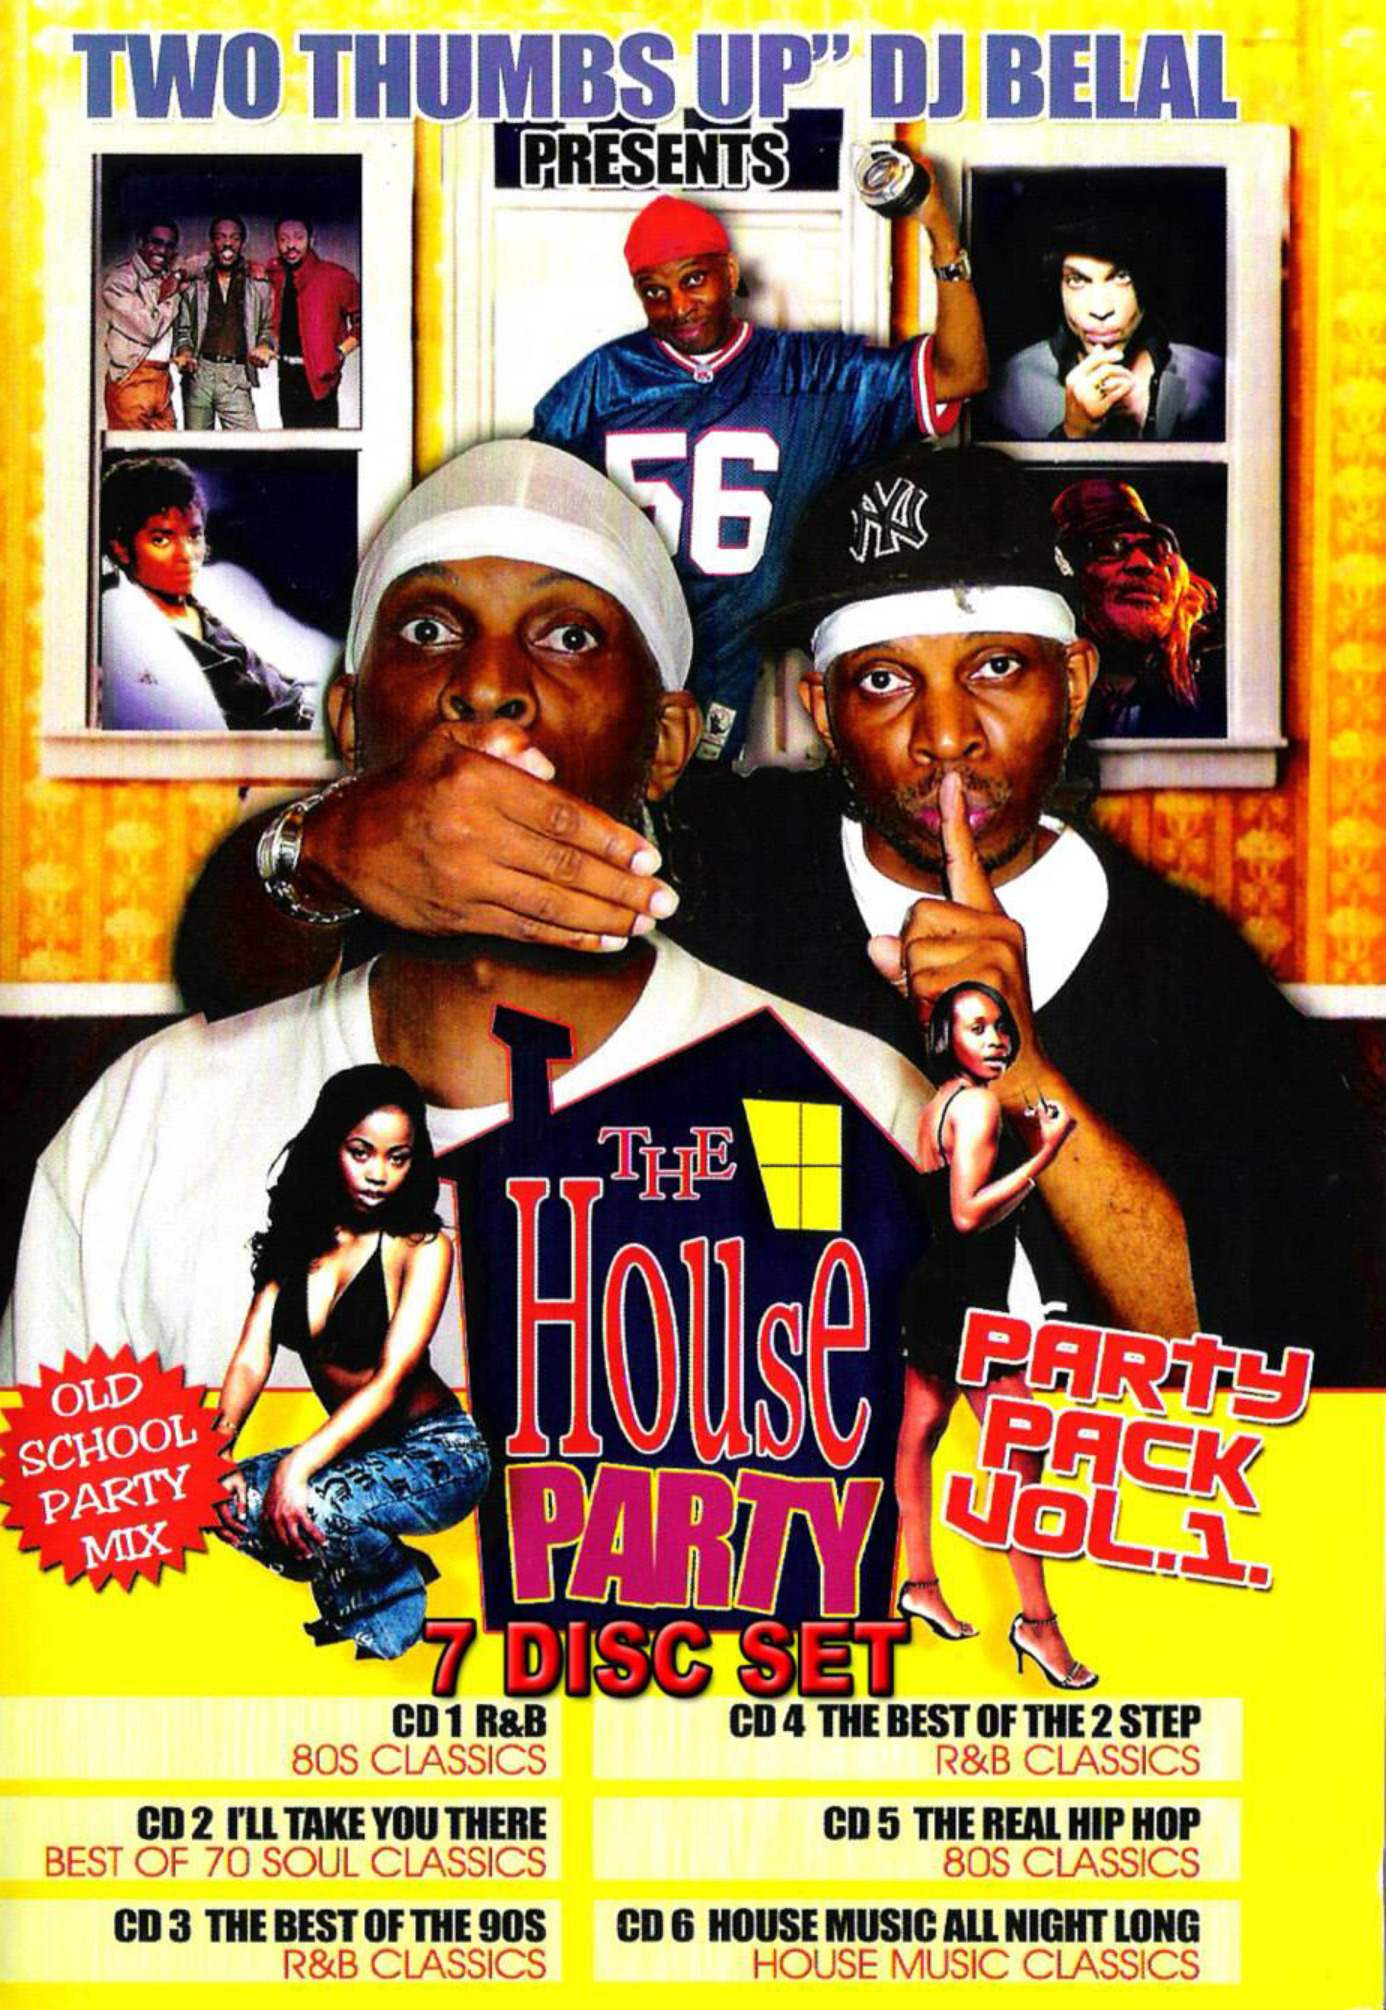 Old School House Party Mix 1 MP3 - The Legendary DJ Belal